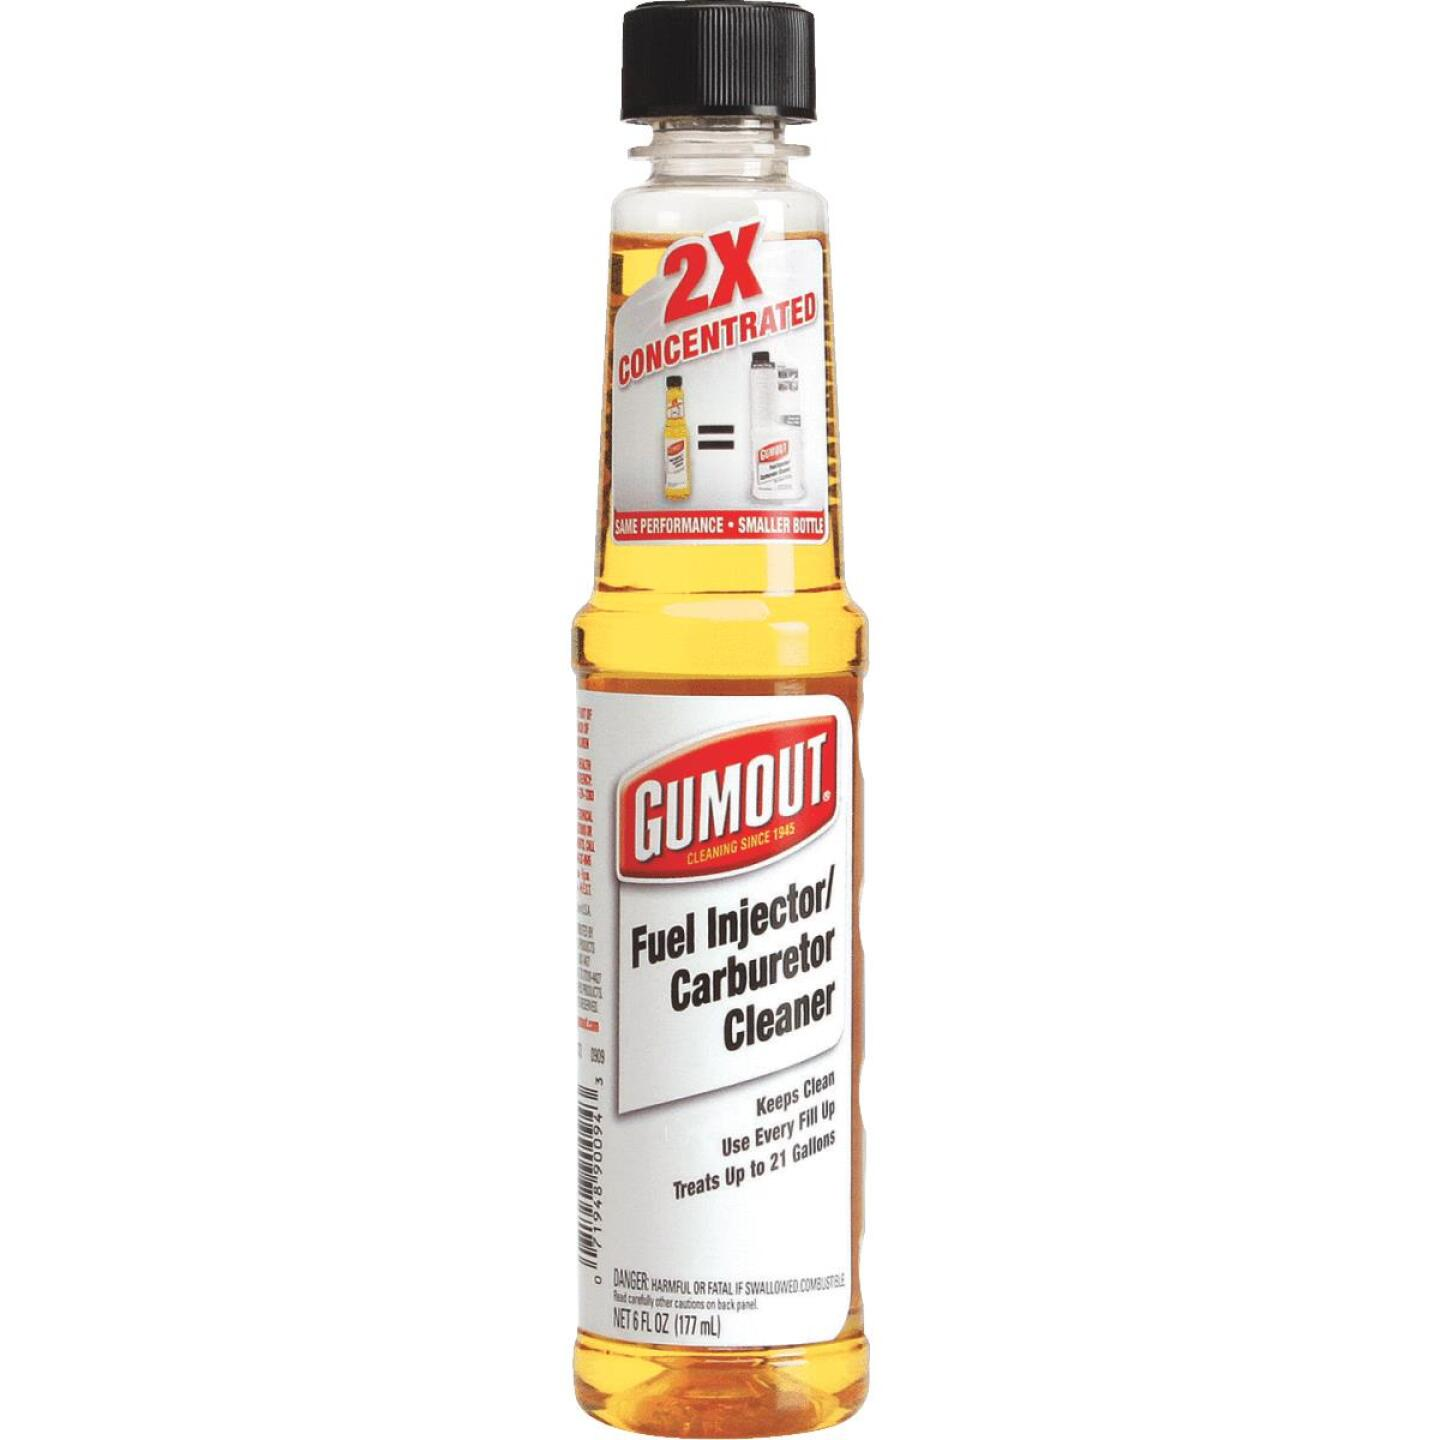 Gumout 6 Oz. Liquid Carburetor Cleaner Image 1